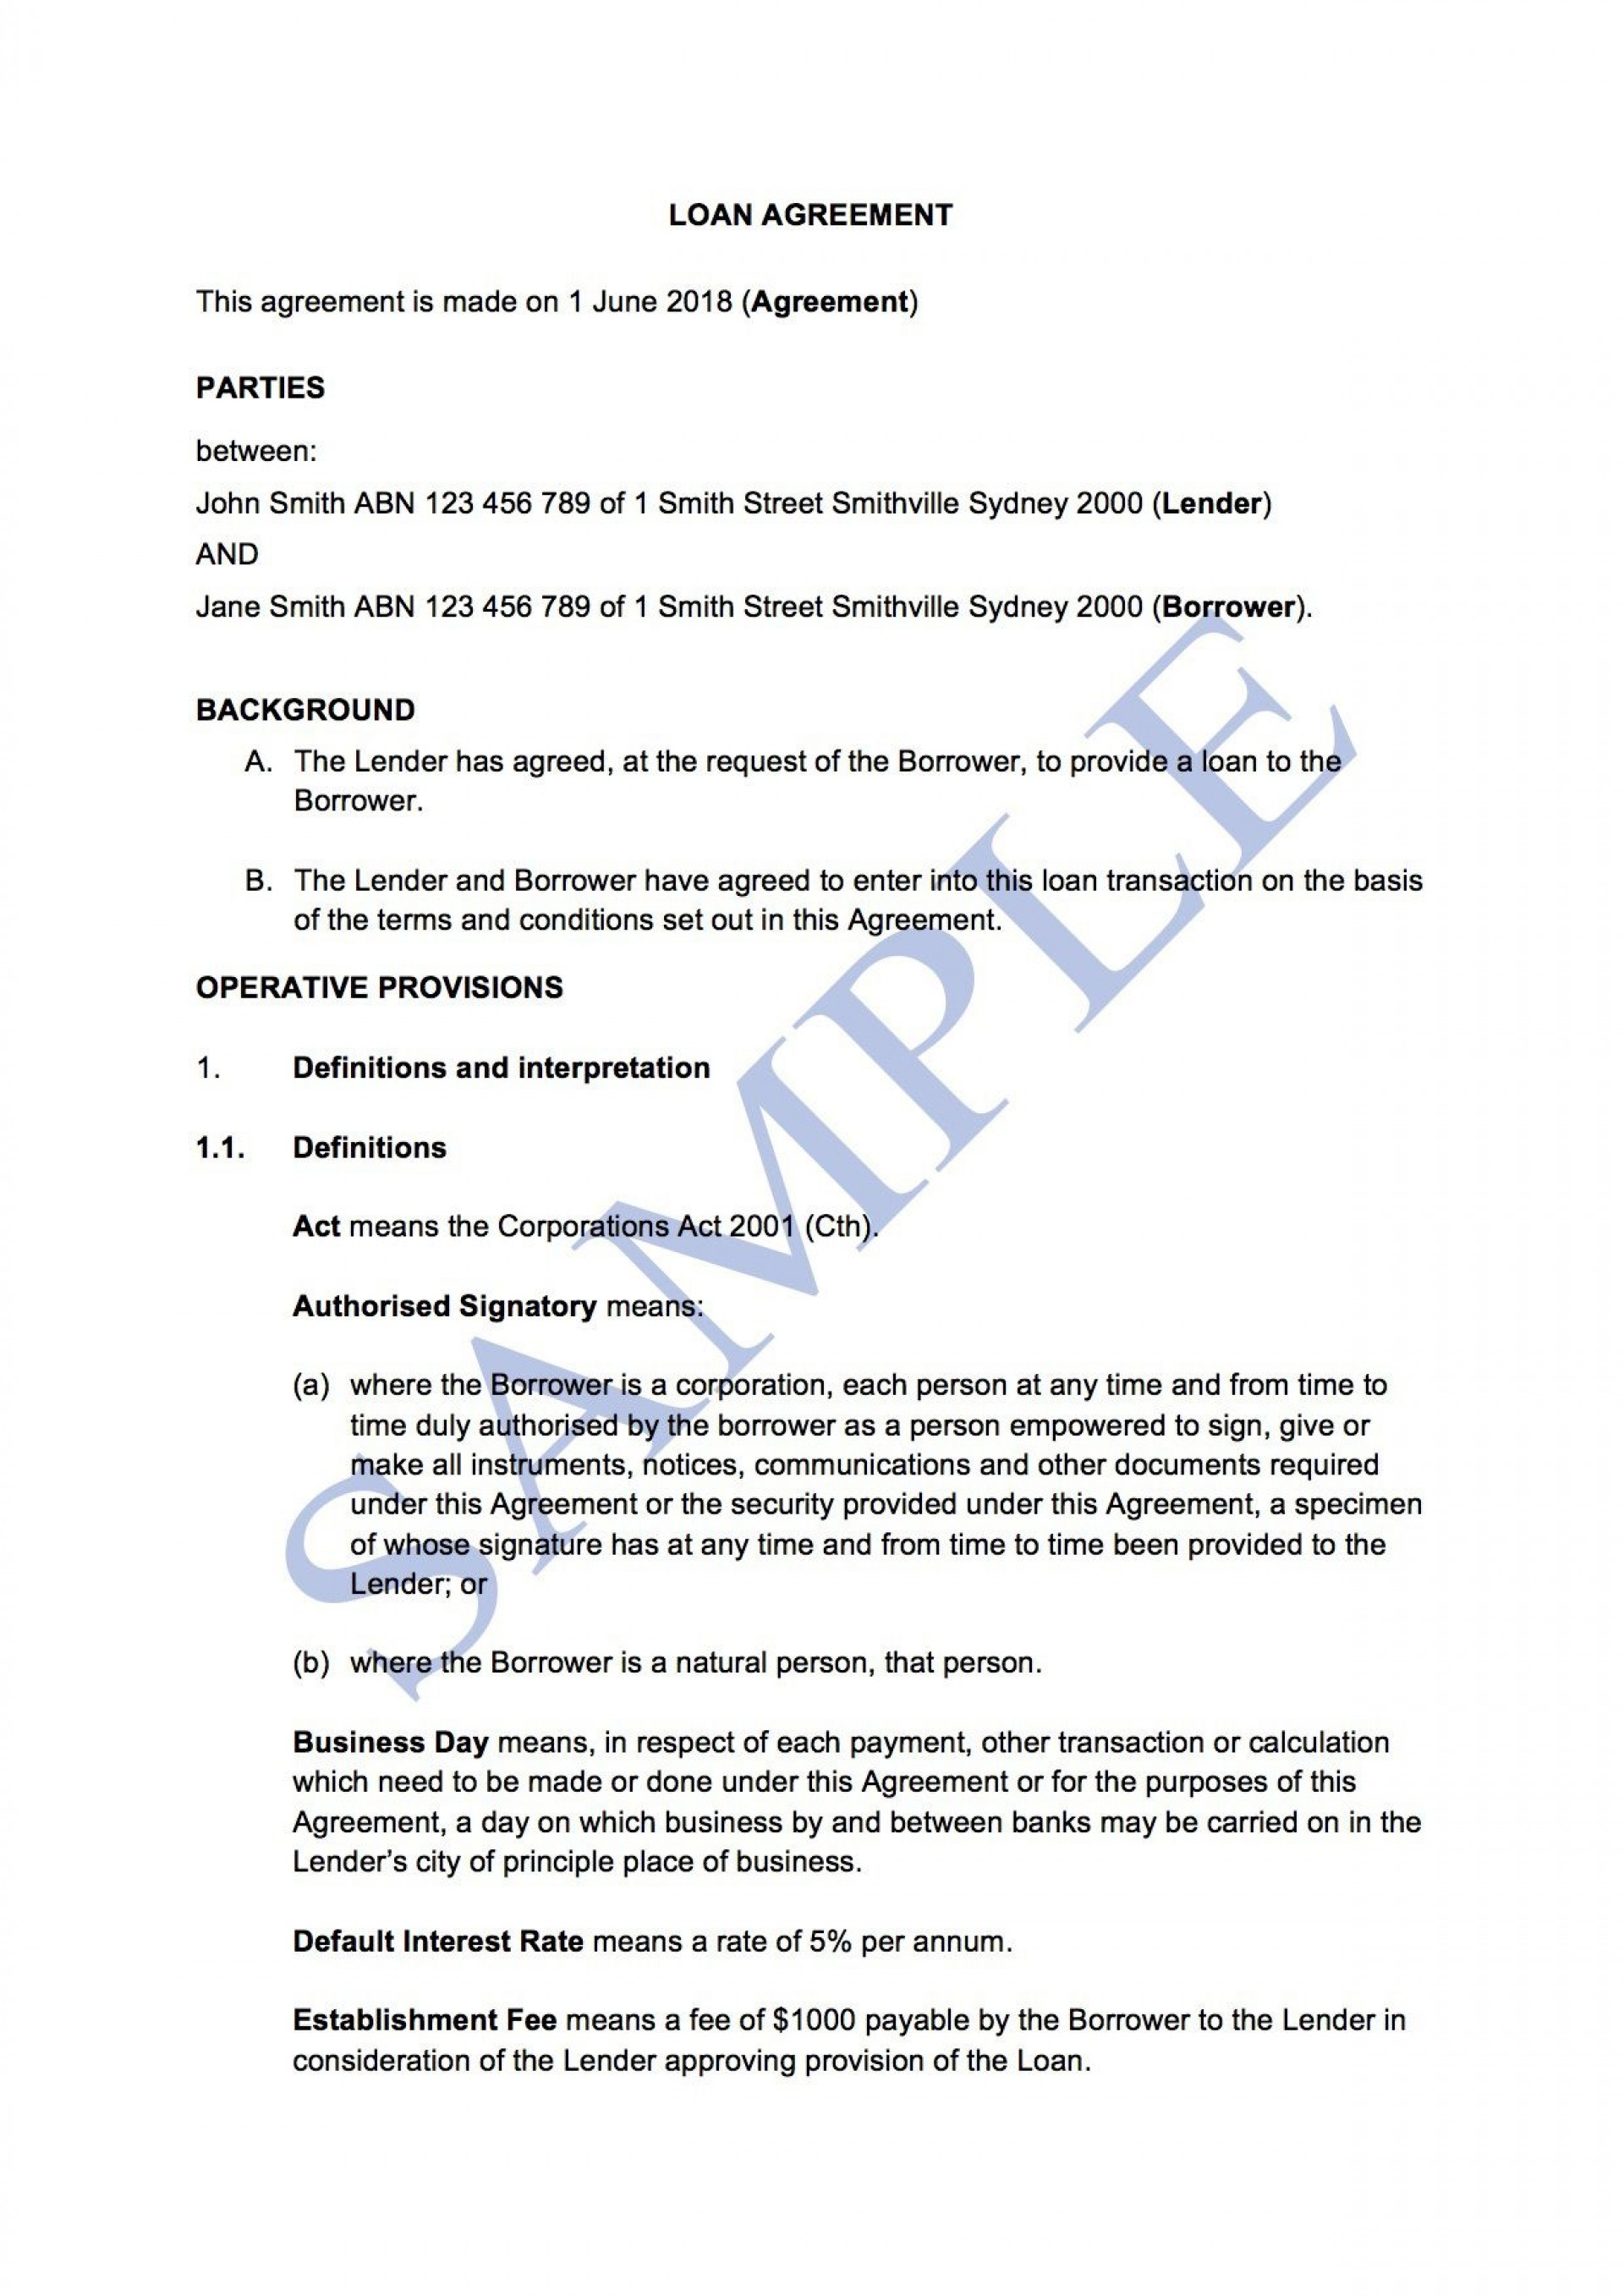 007 Simple Family Loan Agreement Template Australia Highest Clarity 1920